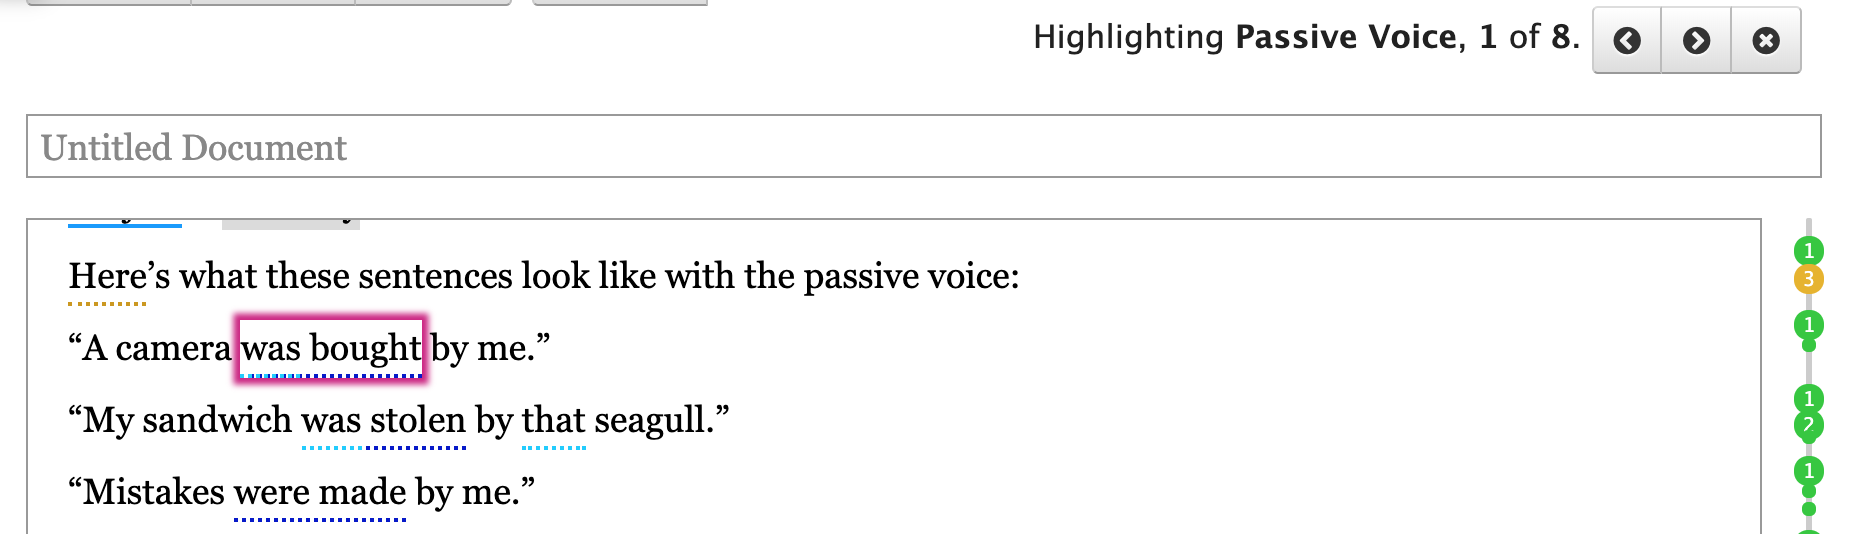 Passive voice detector | Readable, free readability test